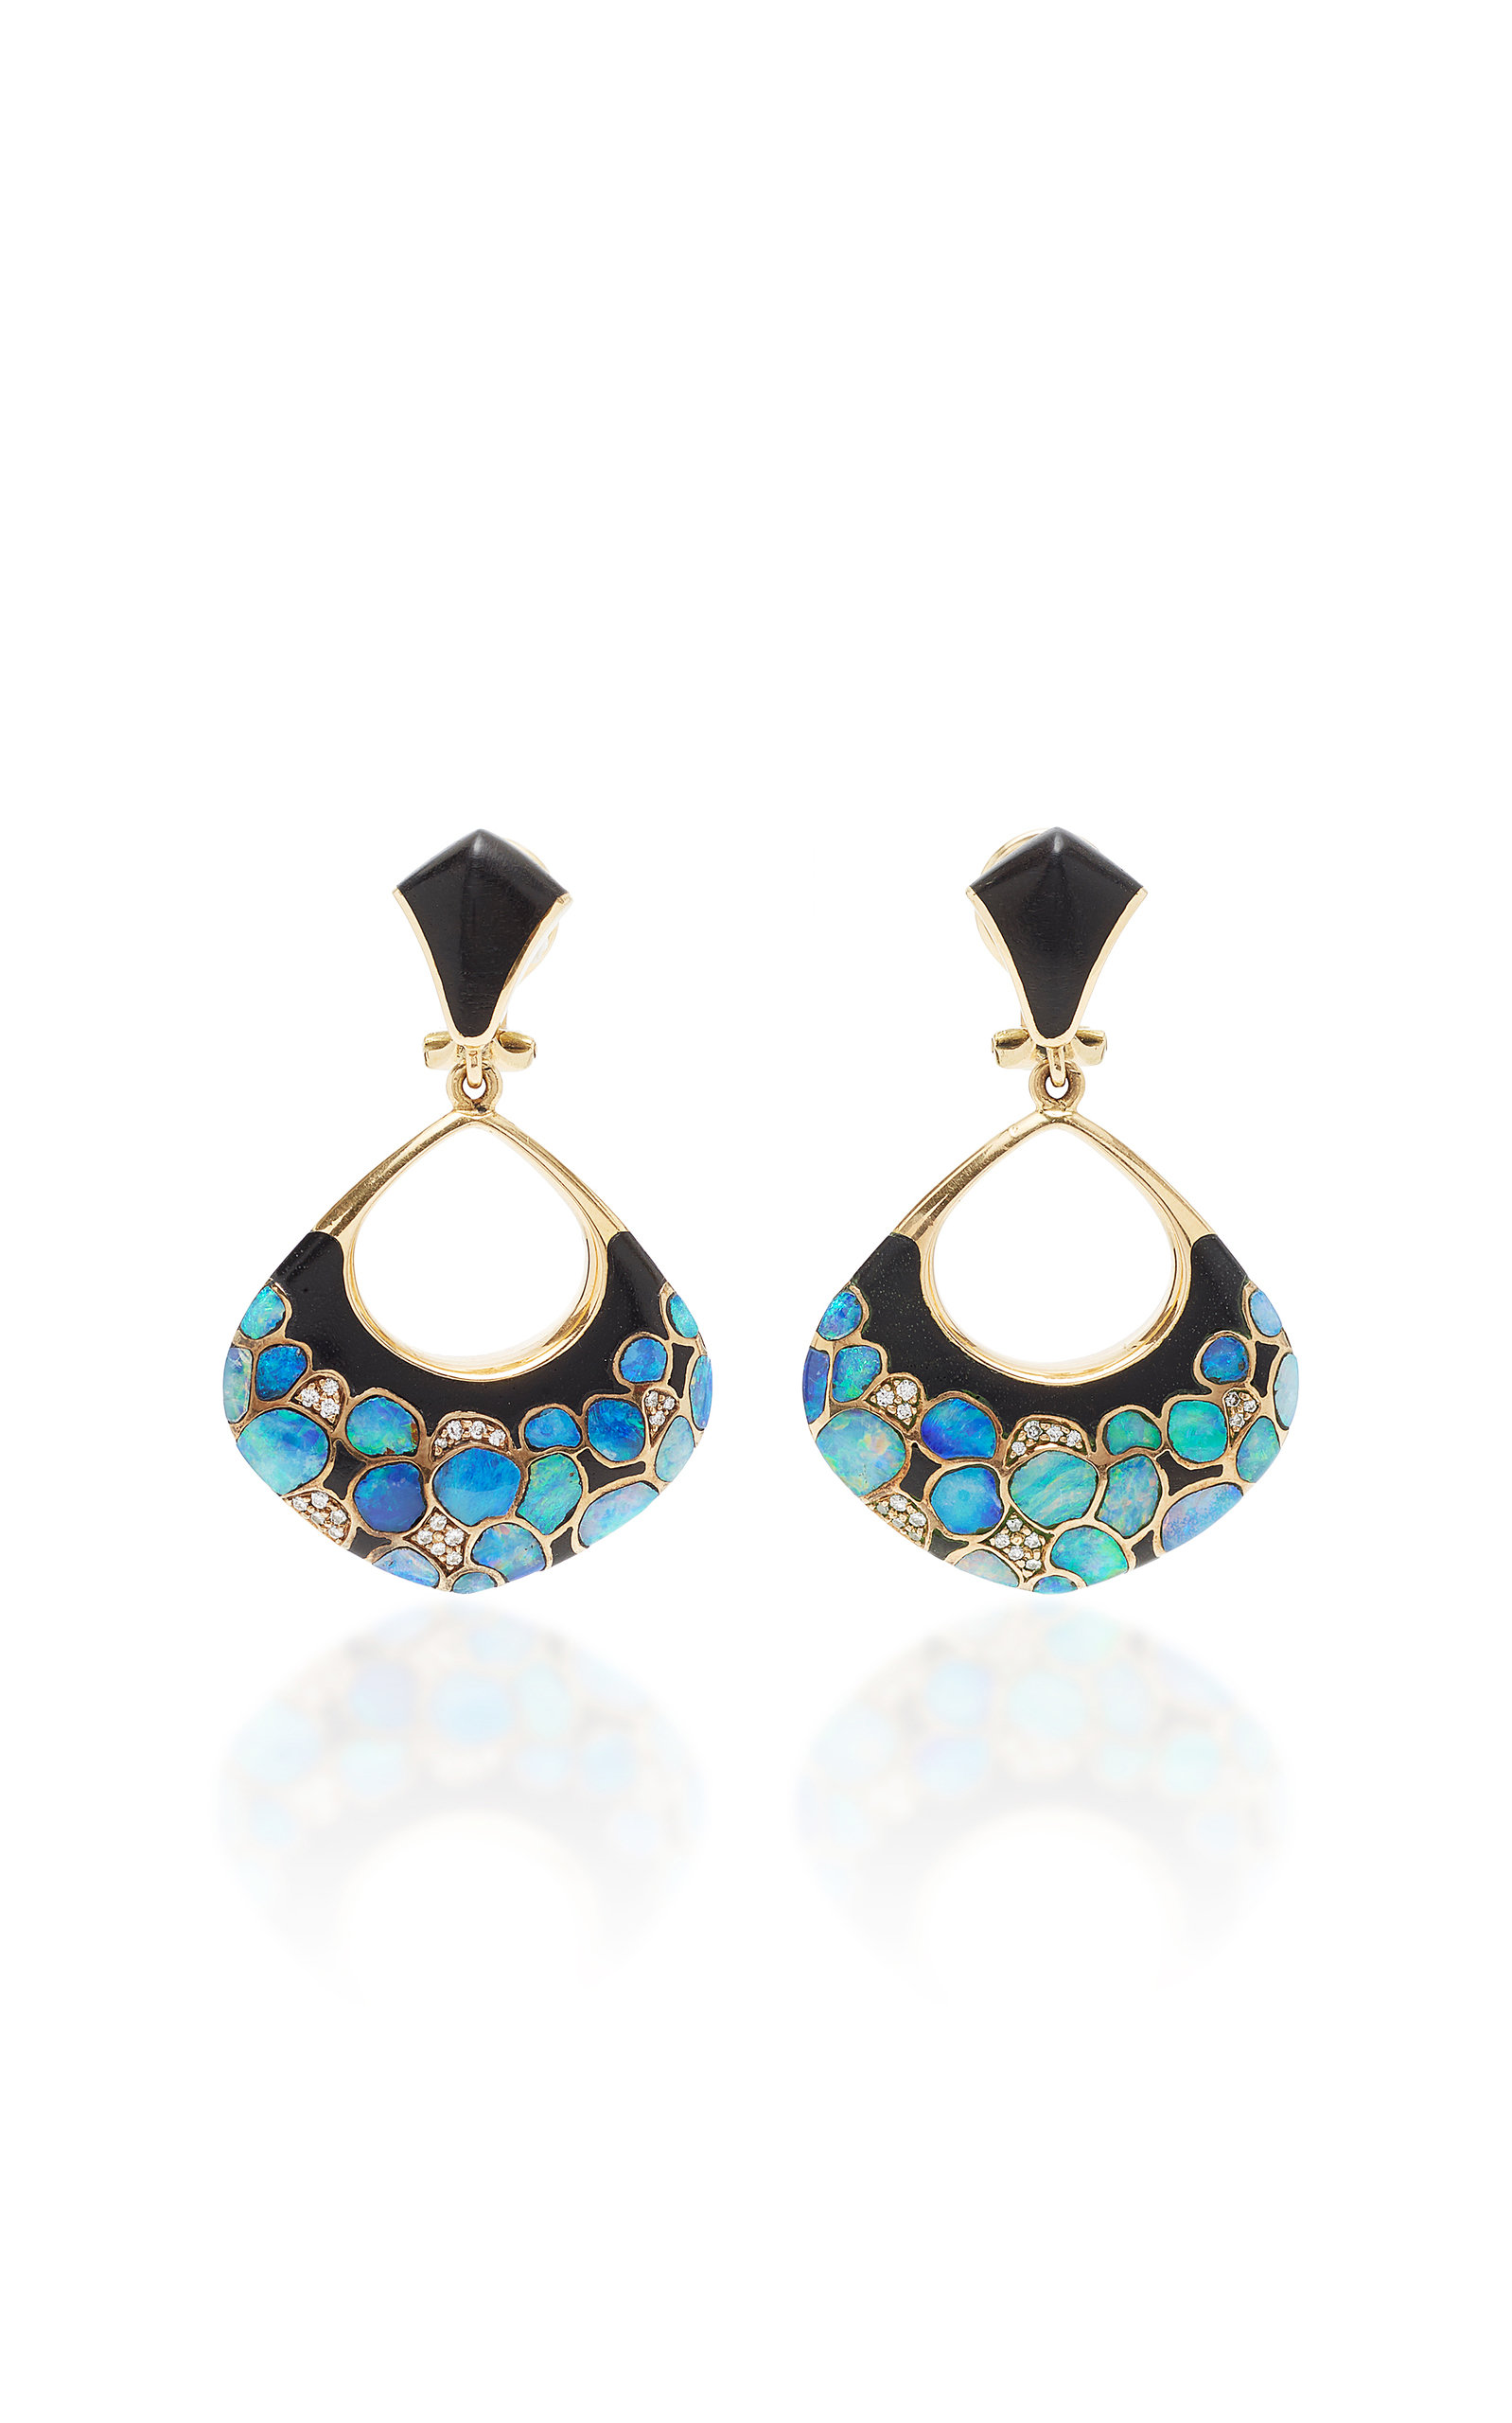 MAHNAZ COLLECTION ONE-OF-A-KIND 18K GOLD WITH OPAL WOOD AND DIAMOND EARRINGS BY PAUL BINDER.